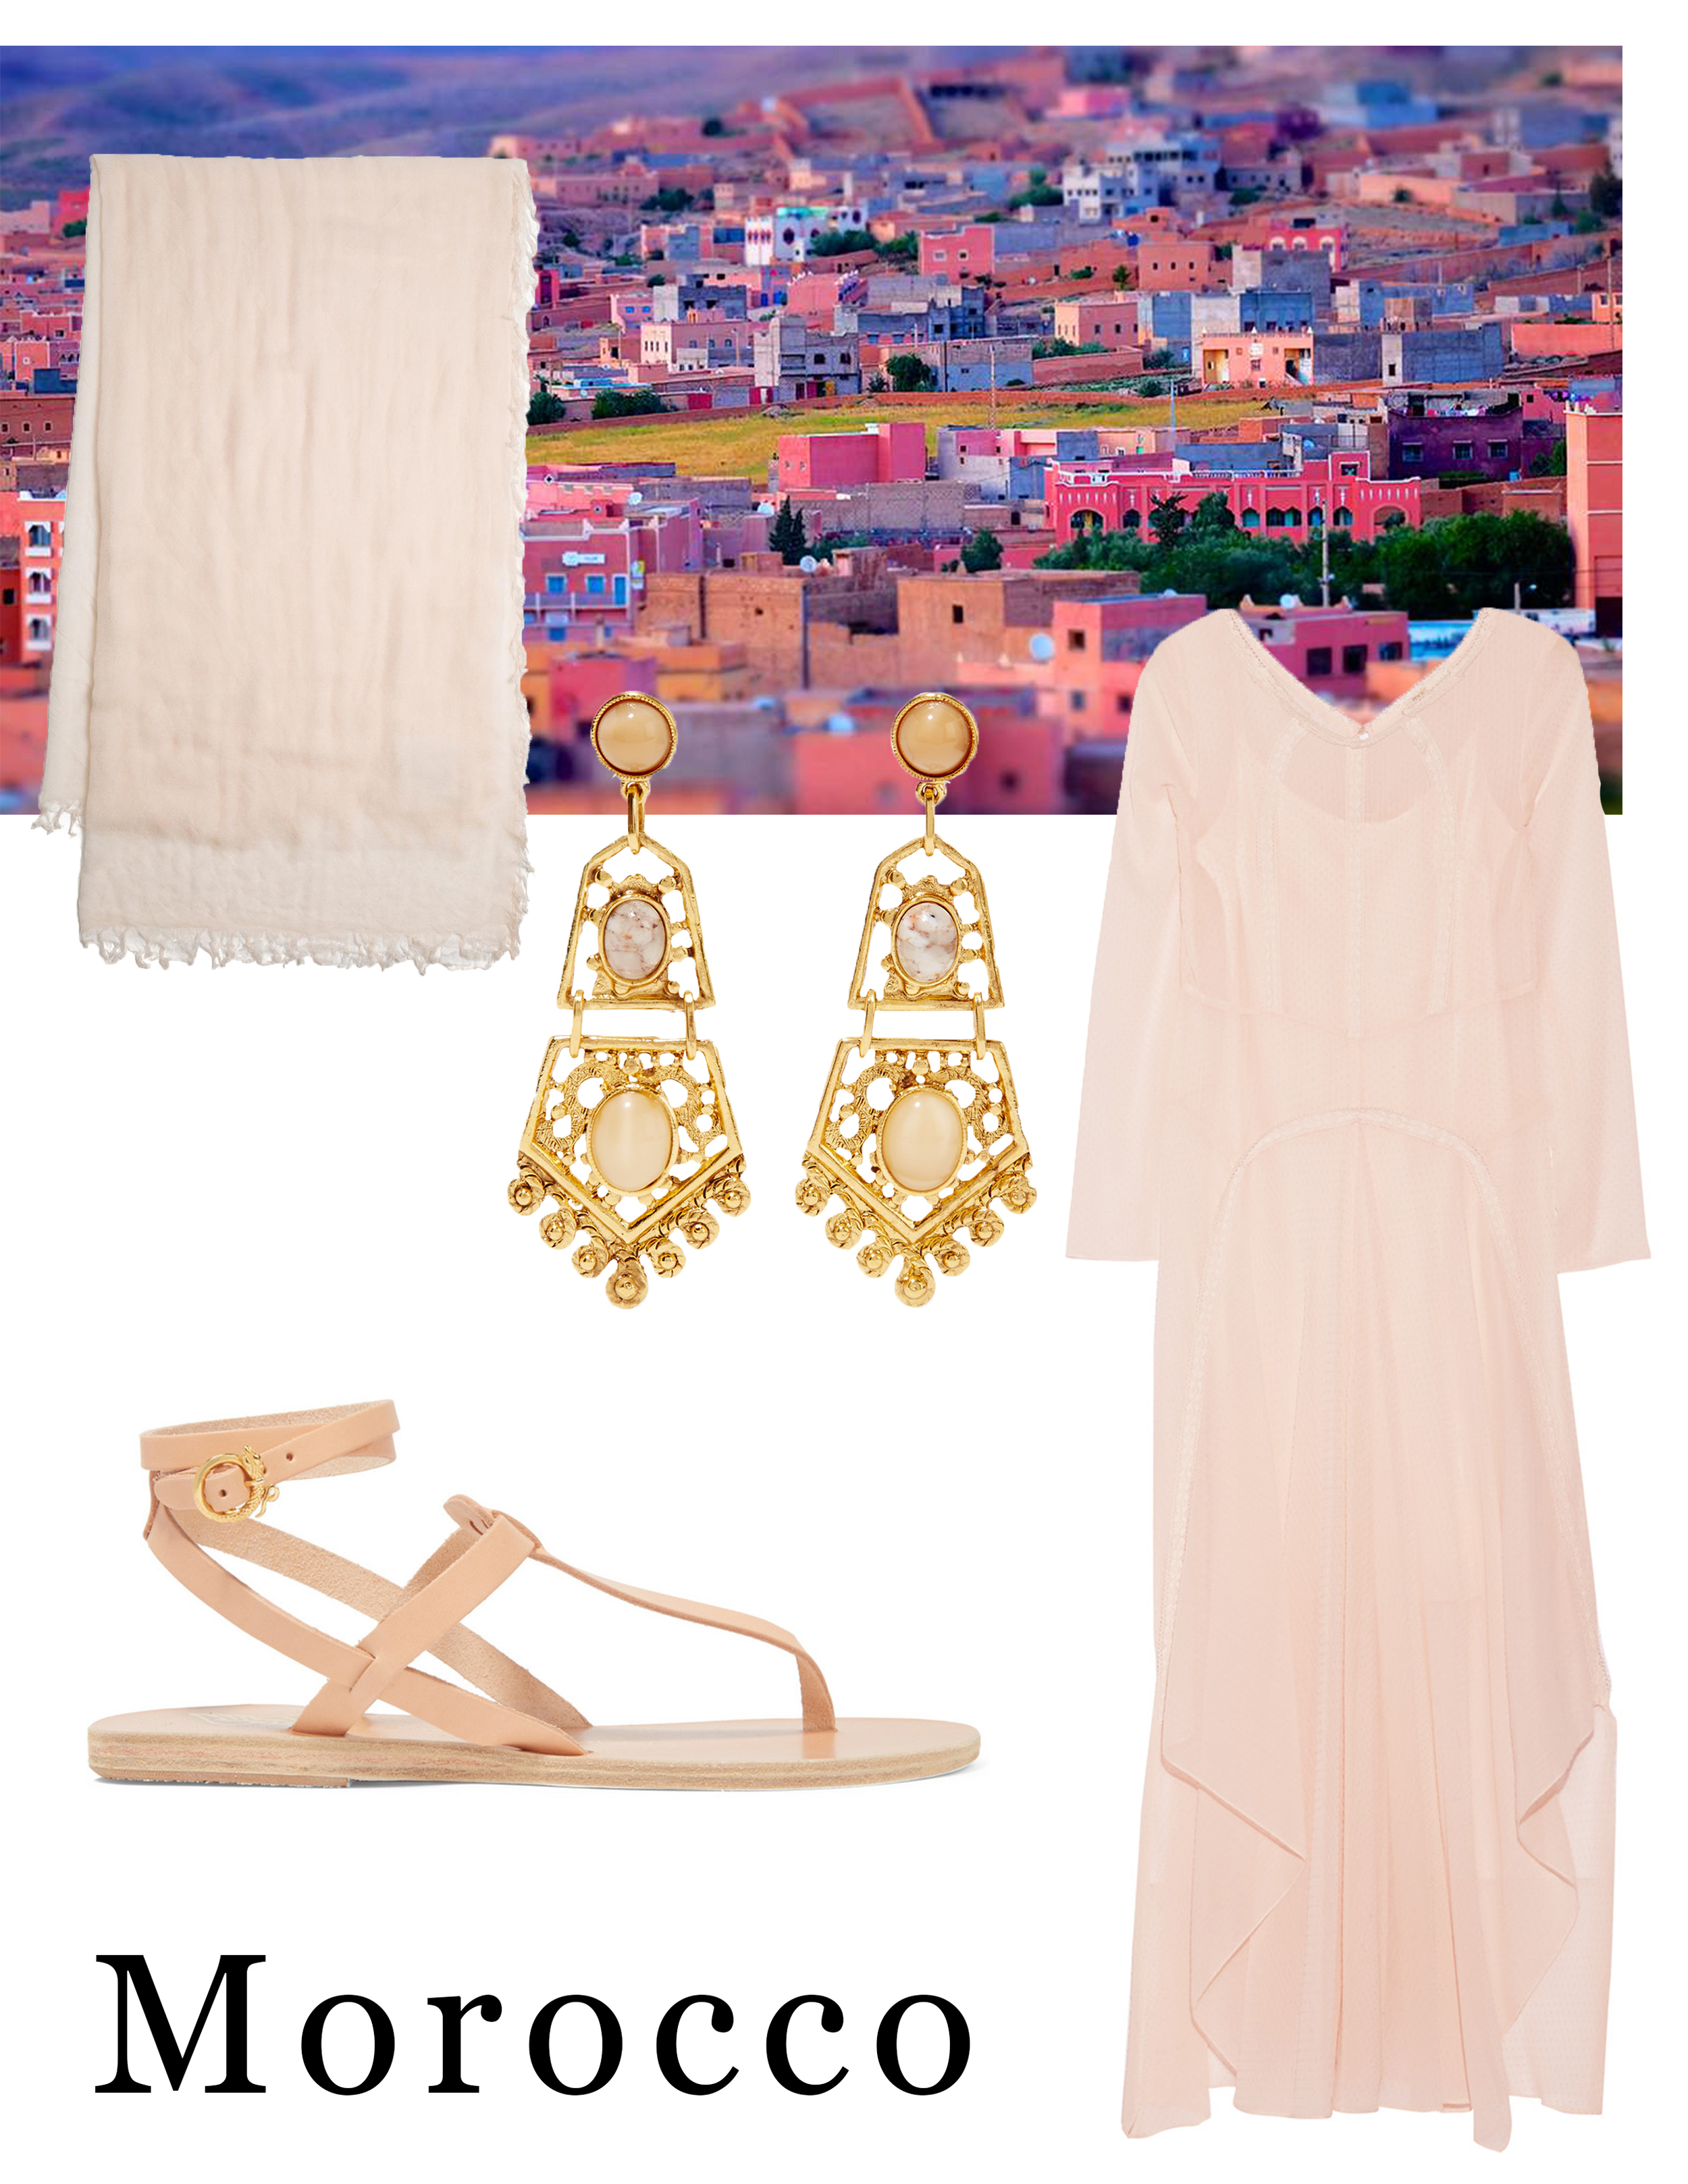 Packing inspiration: flat sandals ( Ancient Greek Sandals ); a scarf for covering hair where necessary ( Rag & Bone ); earrings to dress up day dresses ( Ben-Amun ); a floor-length modest yet chic dress ( Maje ).